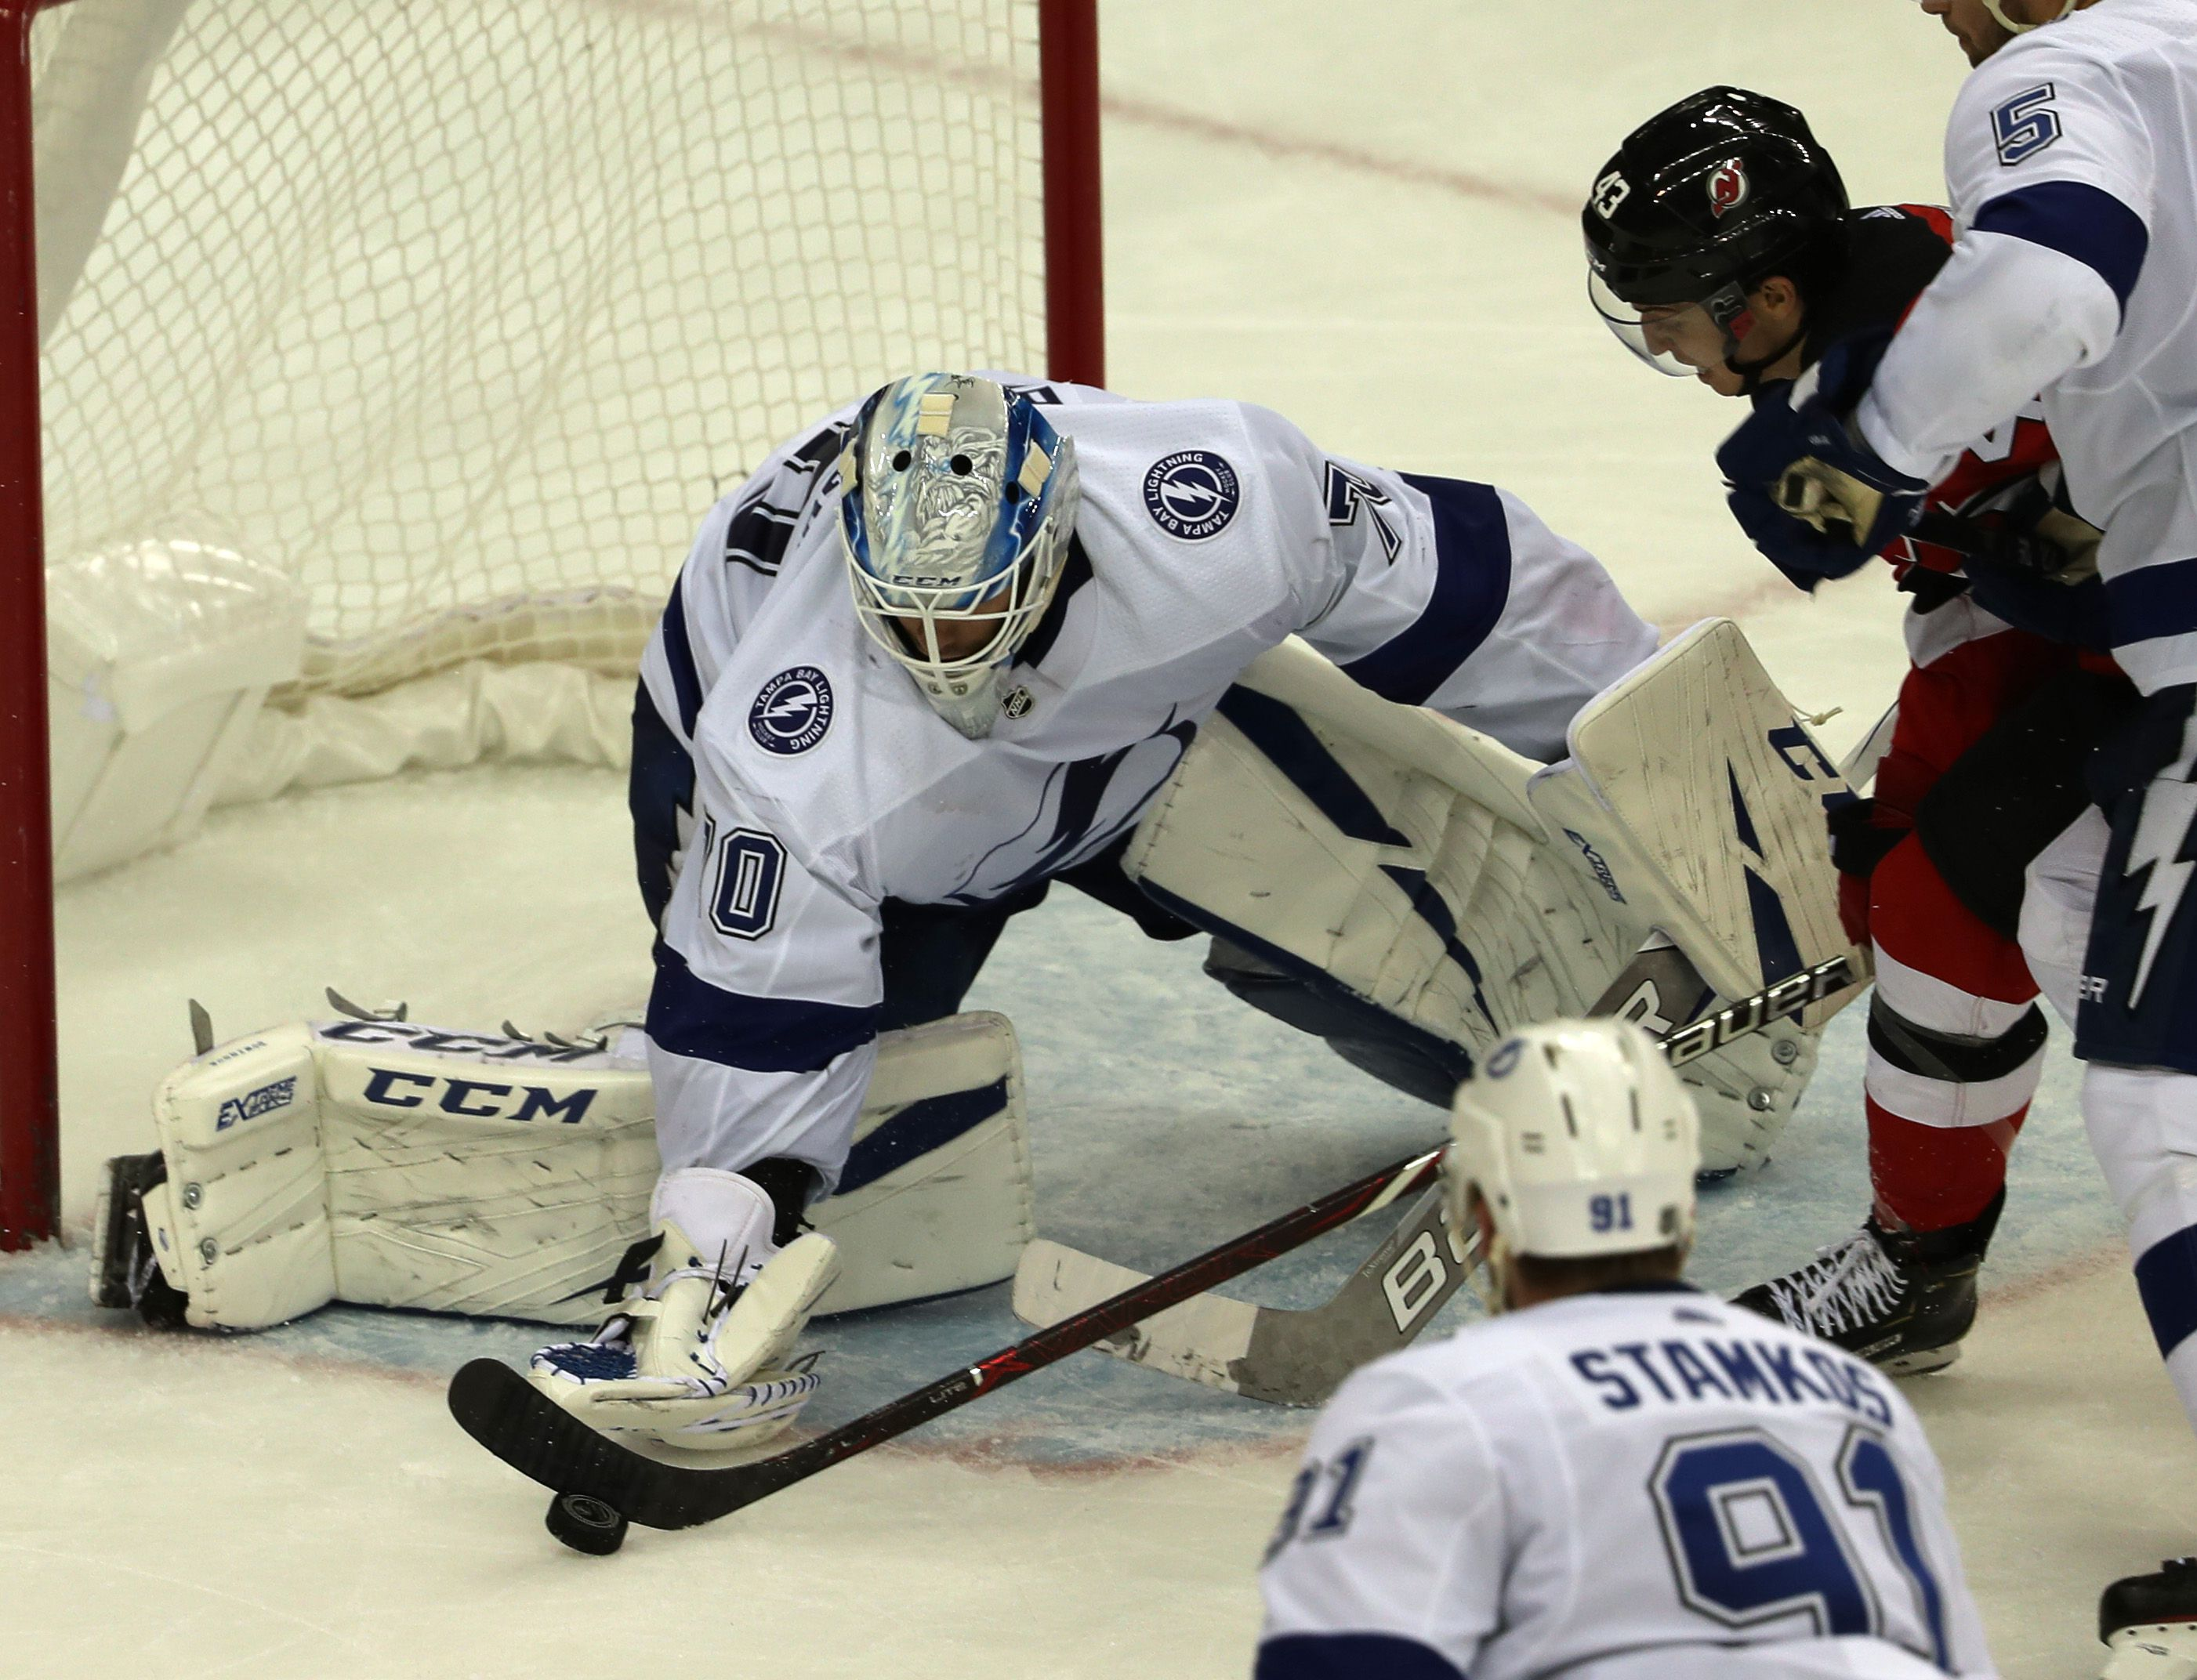 Nhl Trade Rumors Devils Acquire Goalie Louis Domingue From Lightning What It Means Nj Com